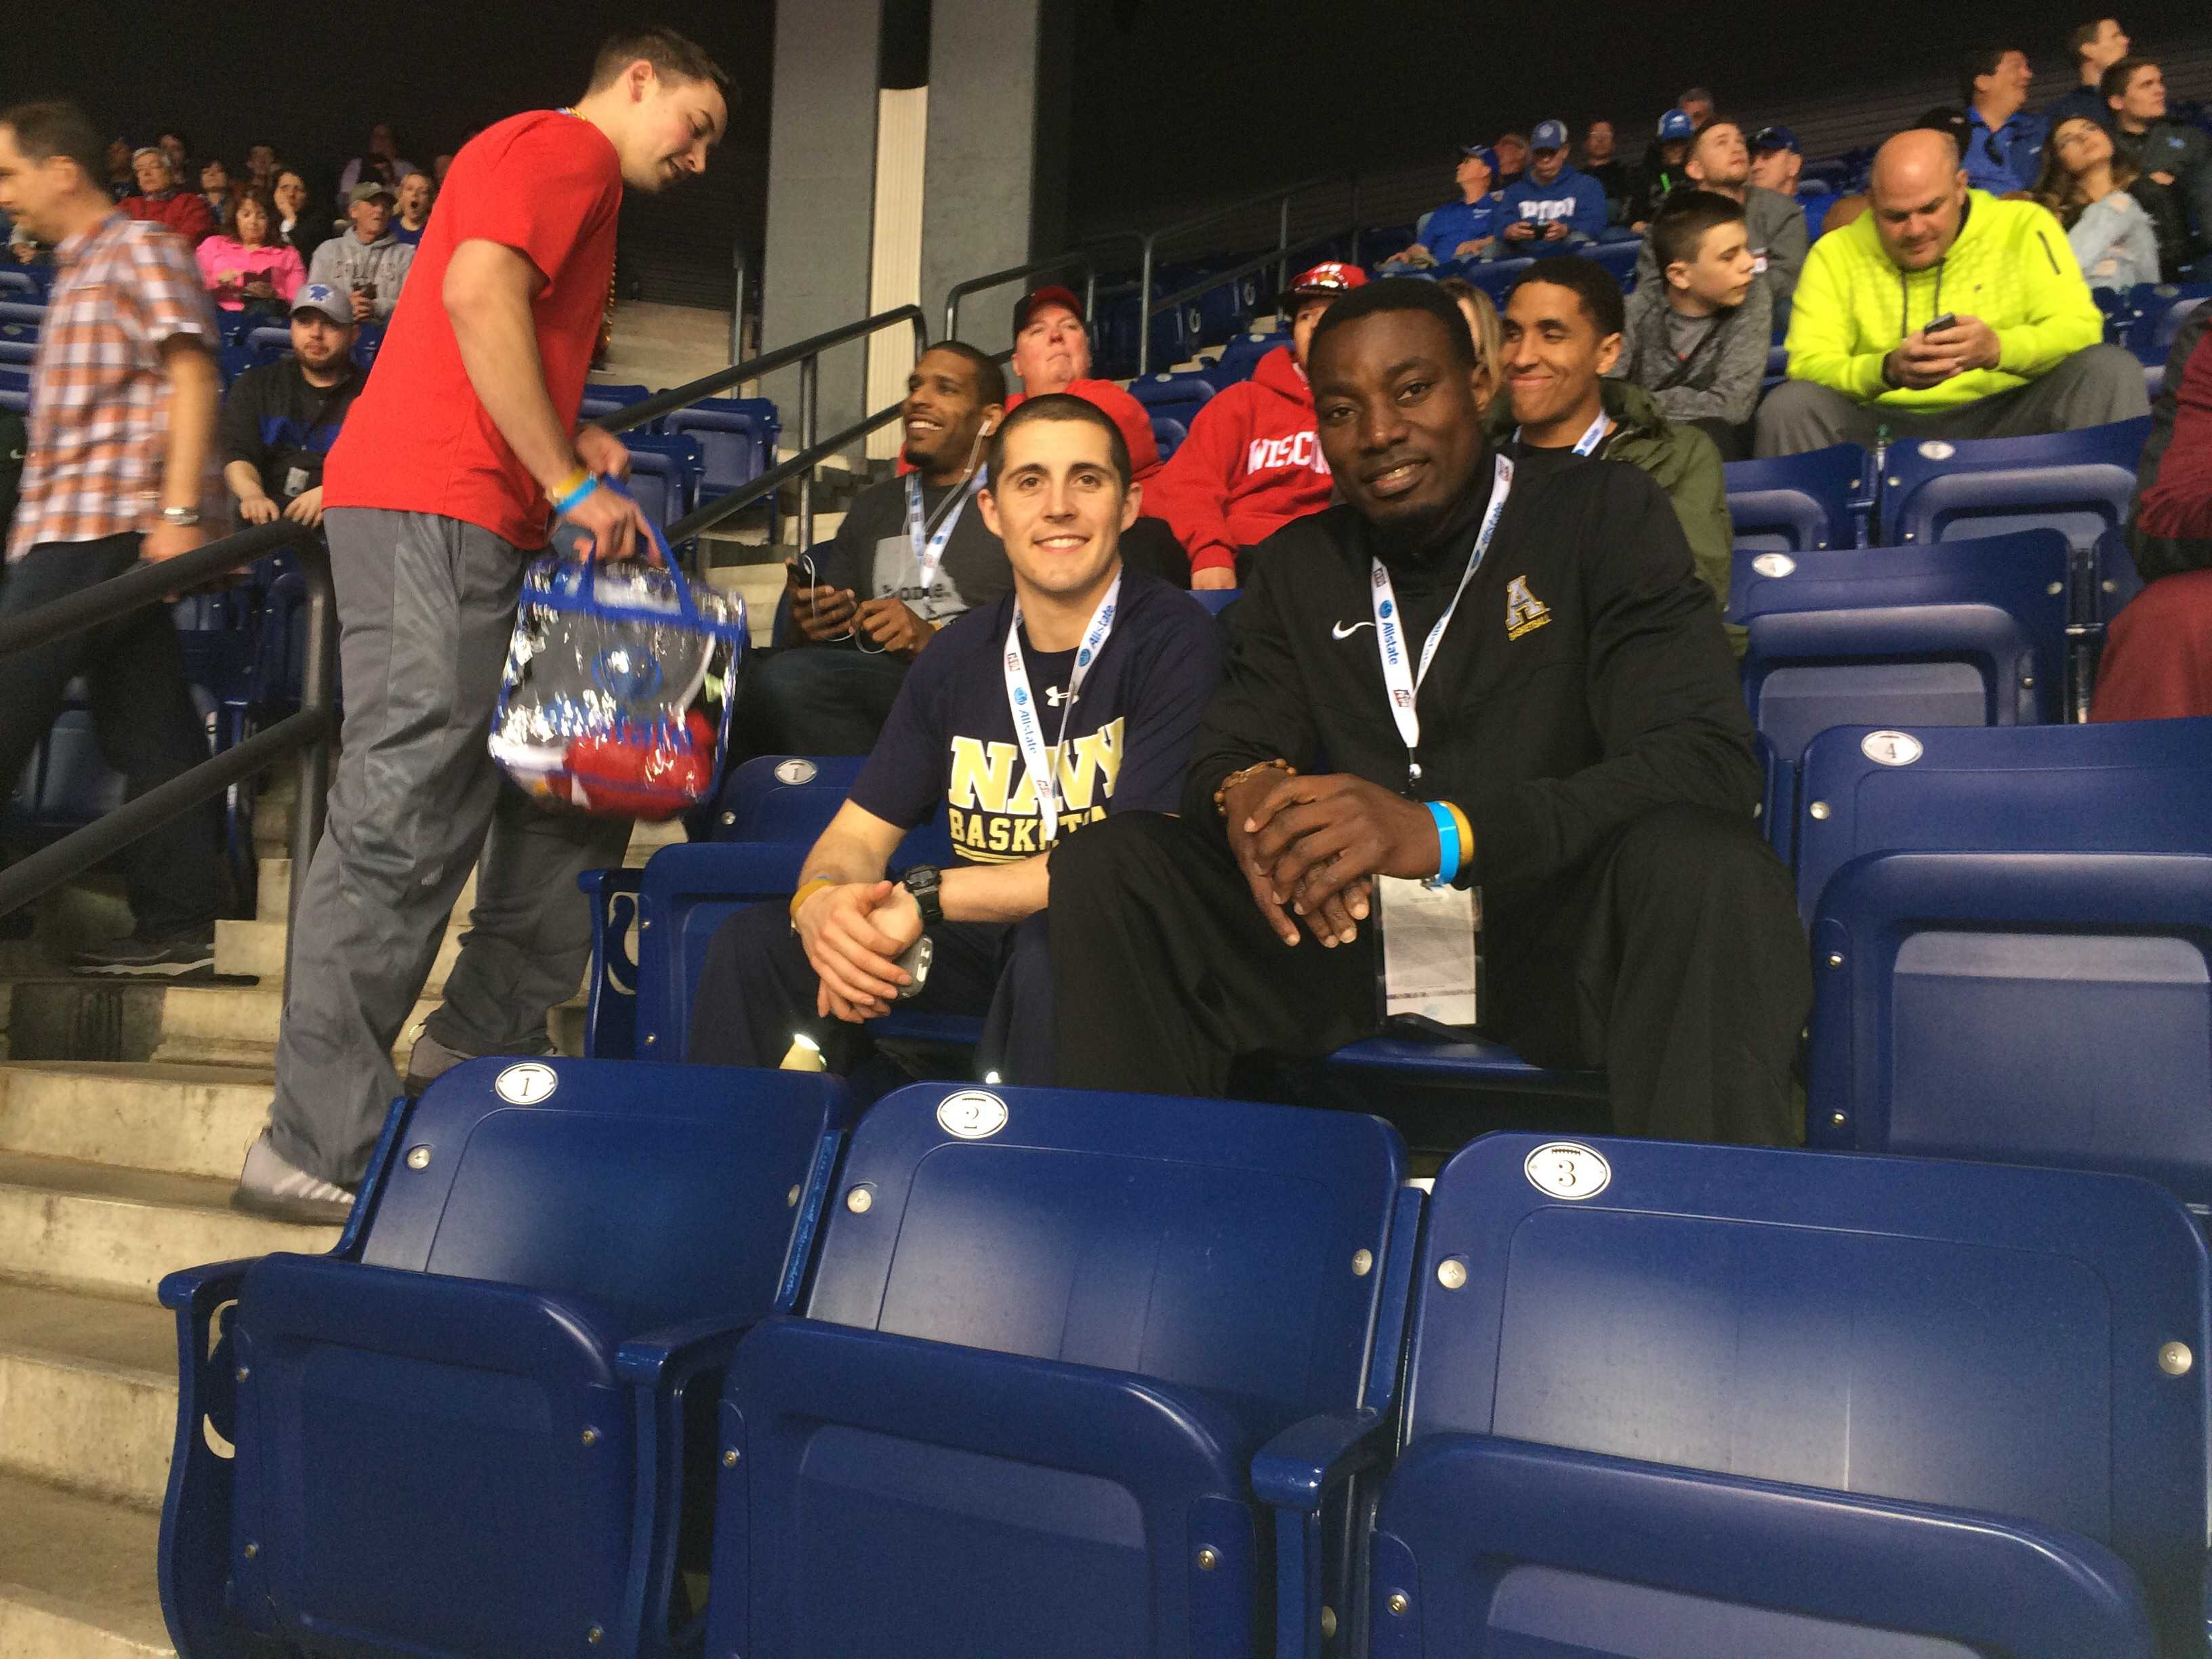 Michael Obacha (right) sits with U.S. Naval Academy Kevin Alter before the Michigan State-Duke Final Four game in Indianapolis, Indiana. Photo: Courtesy of App State Athletics